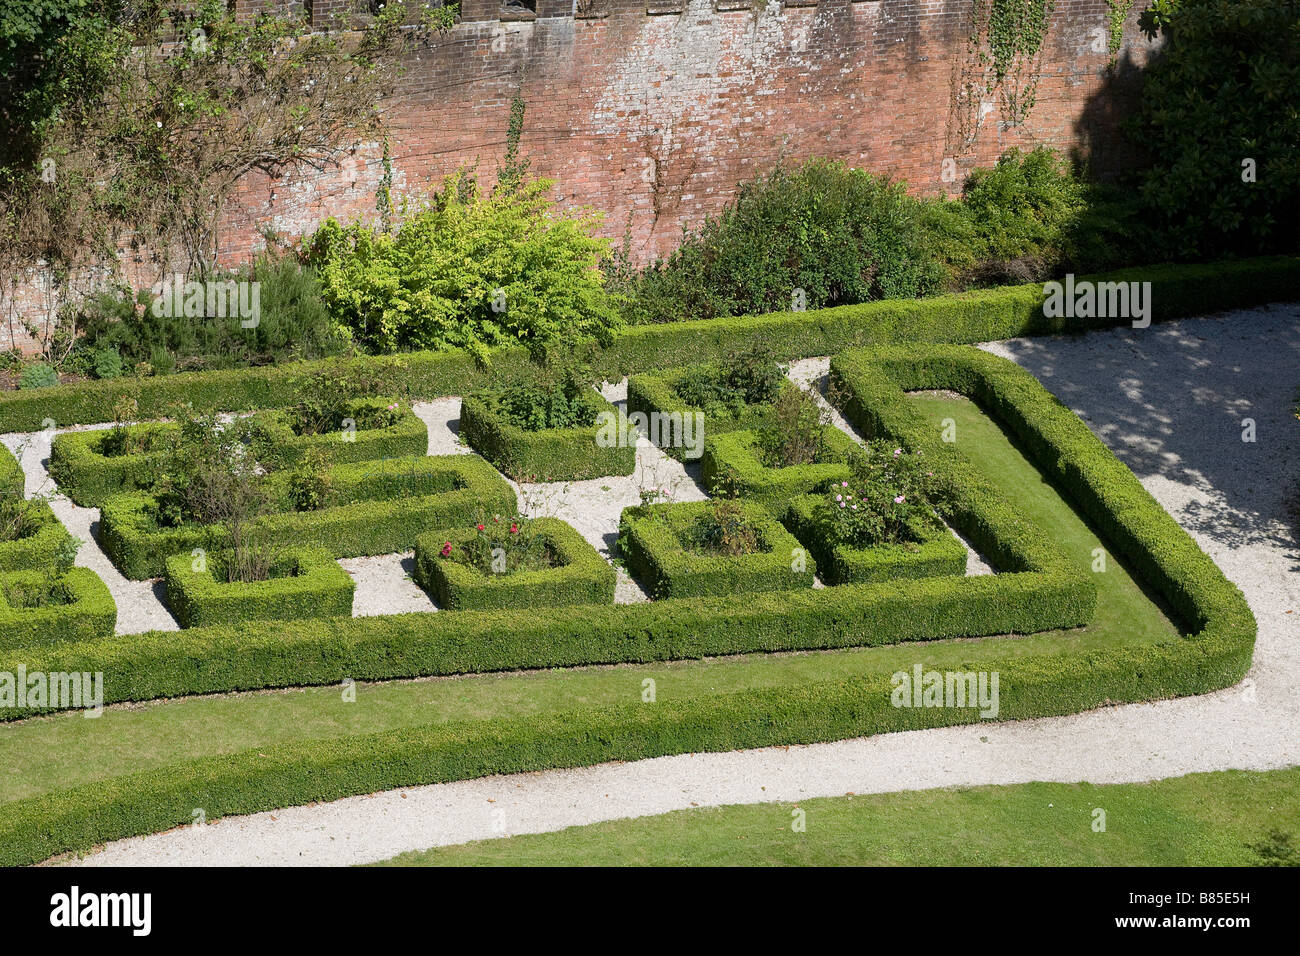 Green shrubbery maze at Laugharne castle in Laugharne Carmarthenshire South Wales - Stock Image